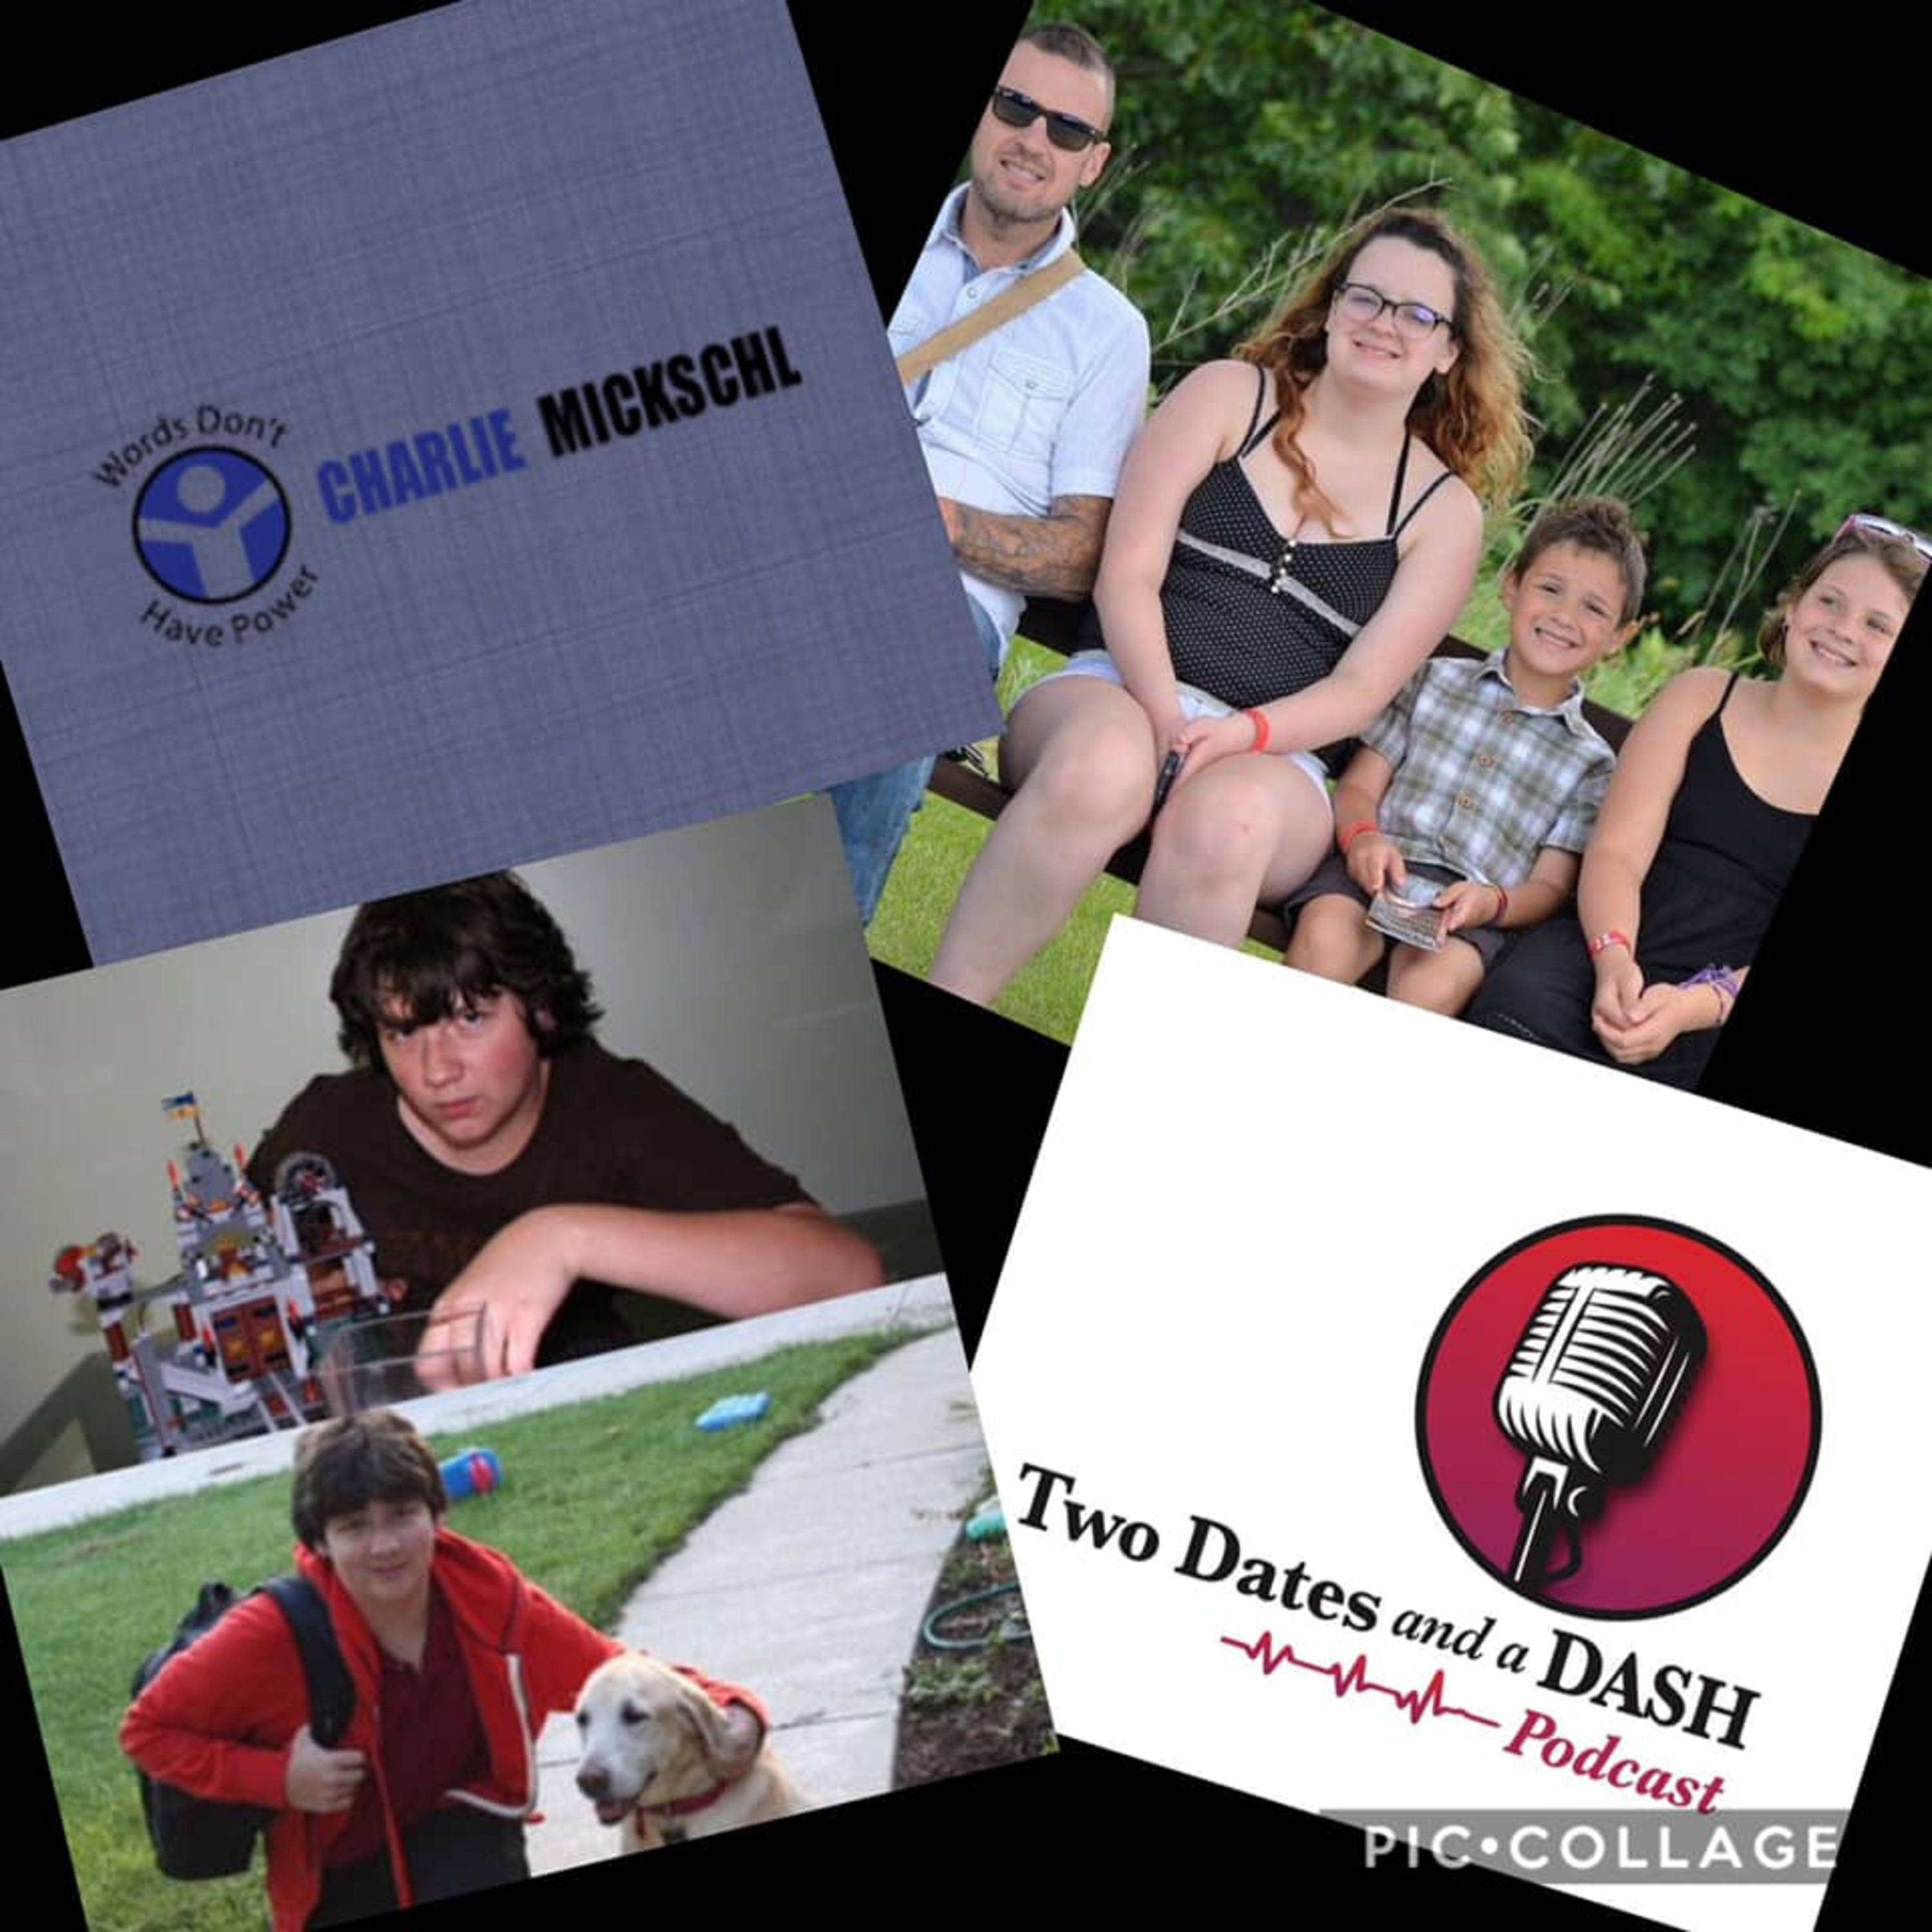 Two Dates and a Dash Podcast Episode 48: Speaker, Anti-Bullying Expert and Family Trauma Resiliency Coach, Charlie Mickschl